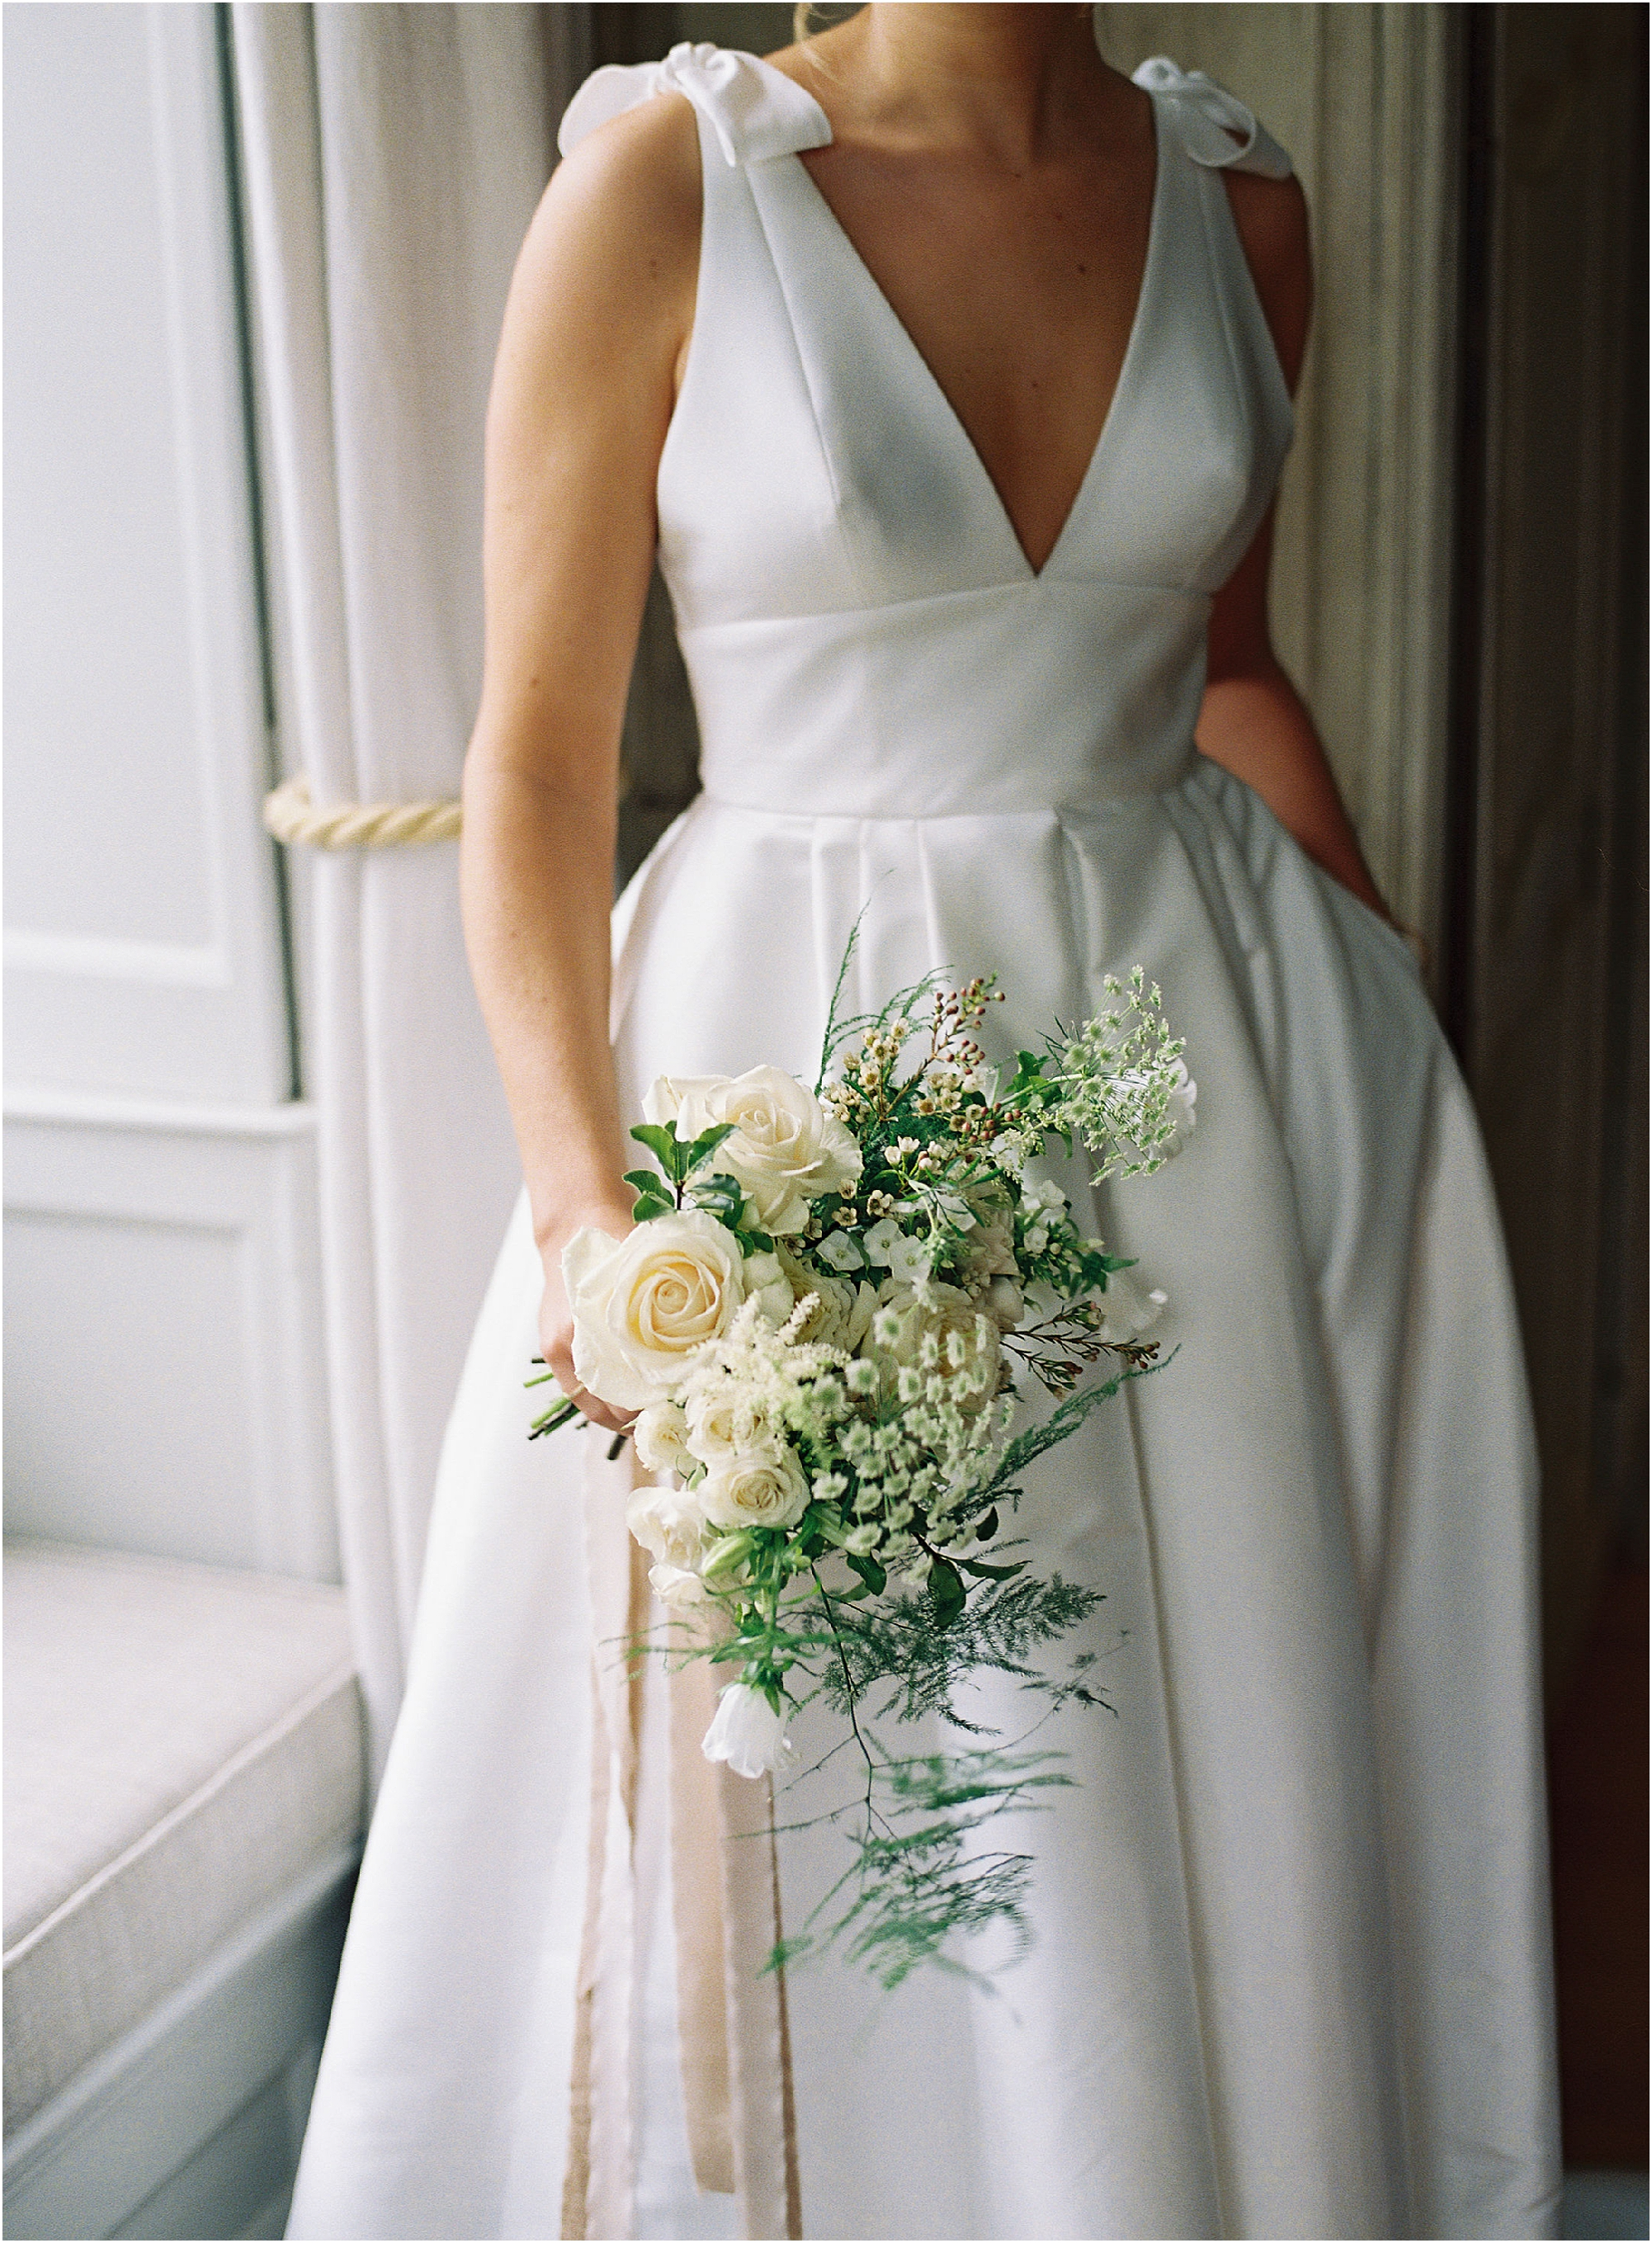 Natural white, cream and green bridal bouquet at Thorpe Manor wedding